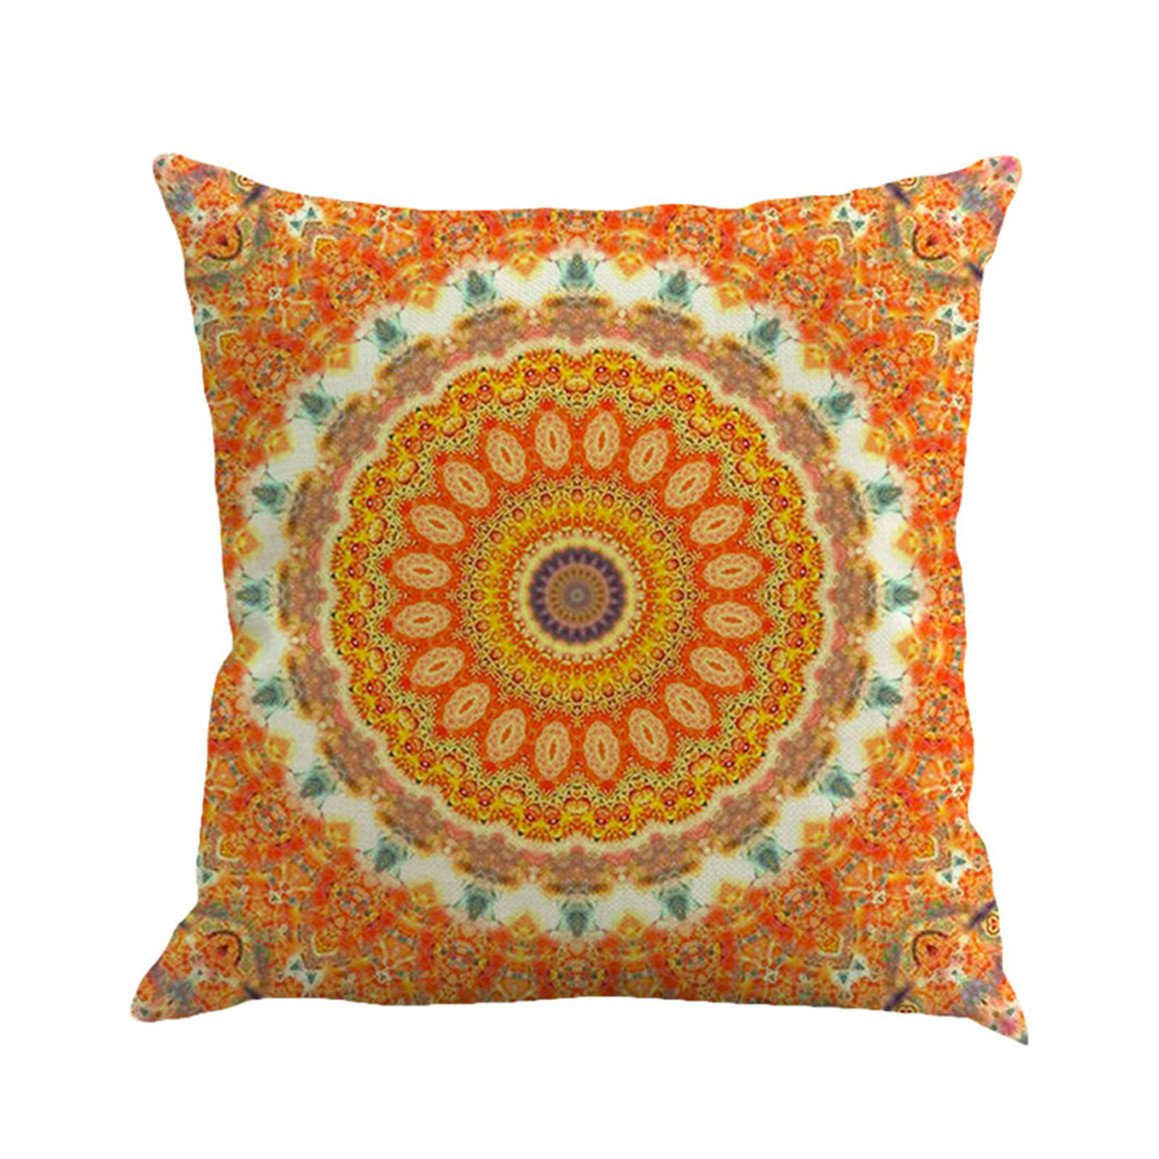 Geometry Painting Pillow Case, WENSY Fashion Square Pillow case 45cm45cm (A)